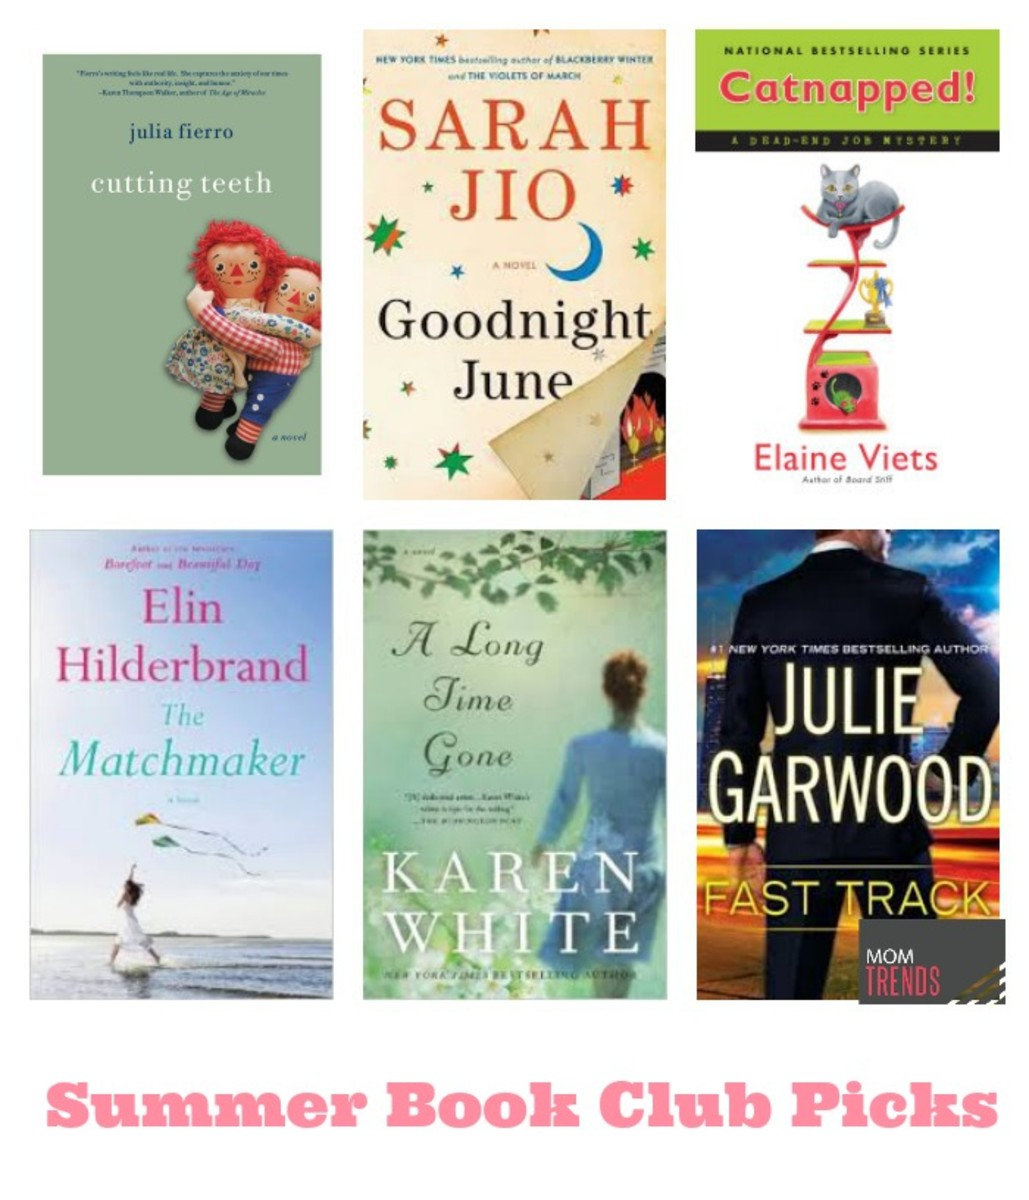 Summer Book Club Picks.jpg.jpg